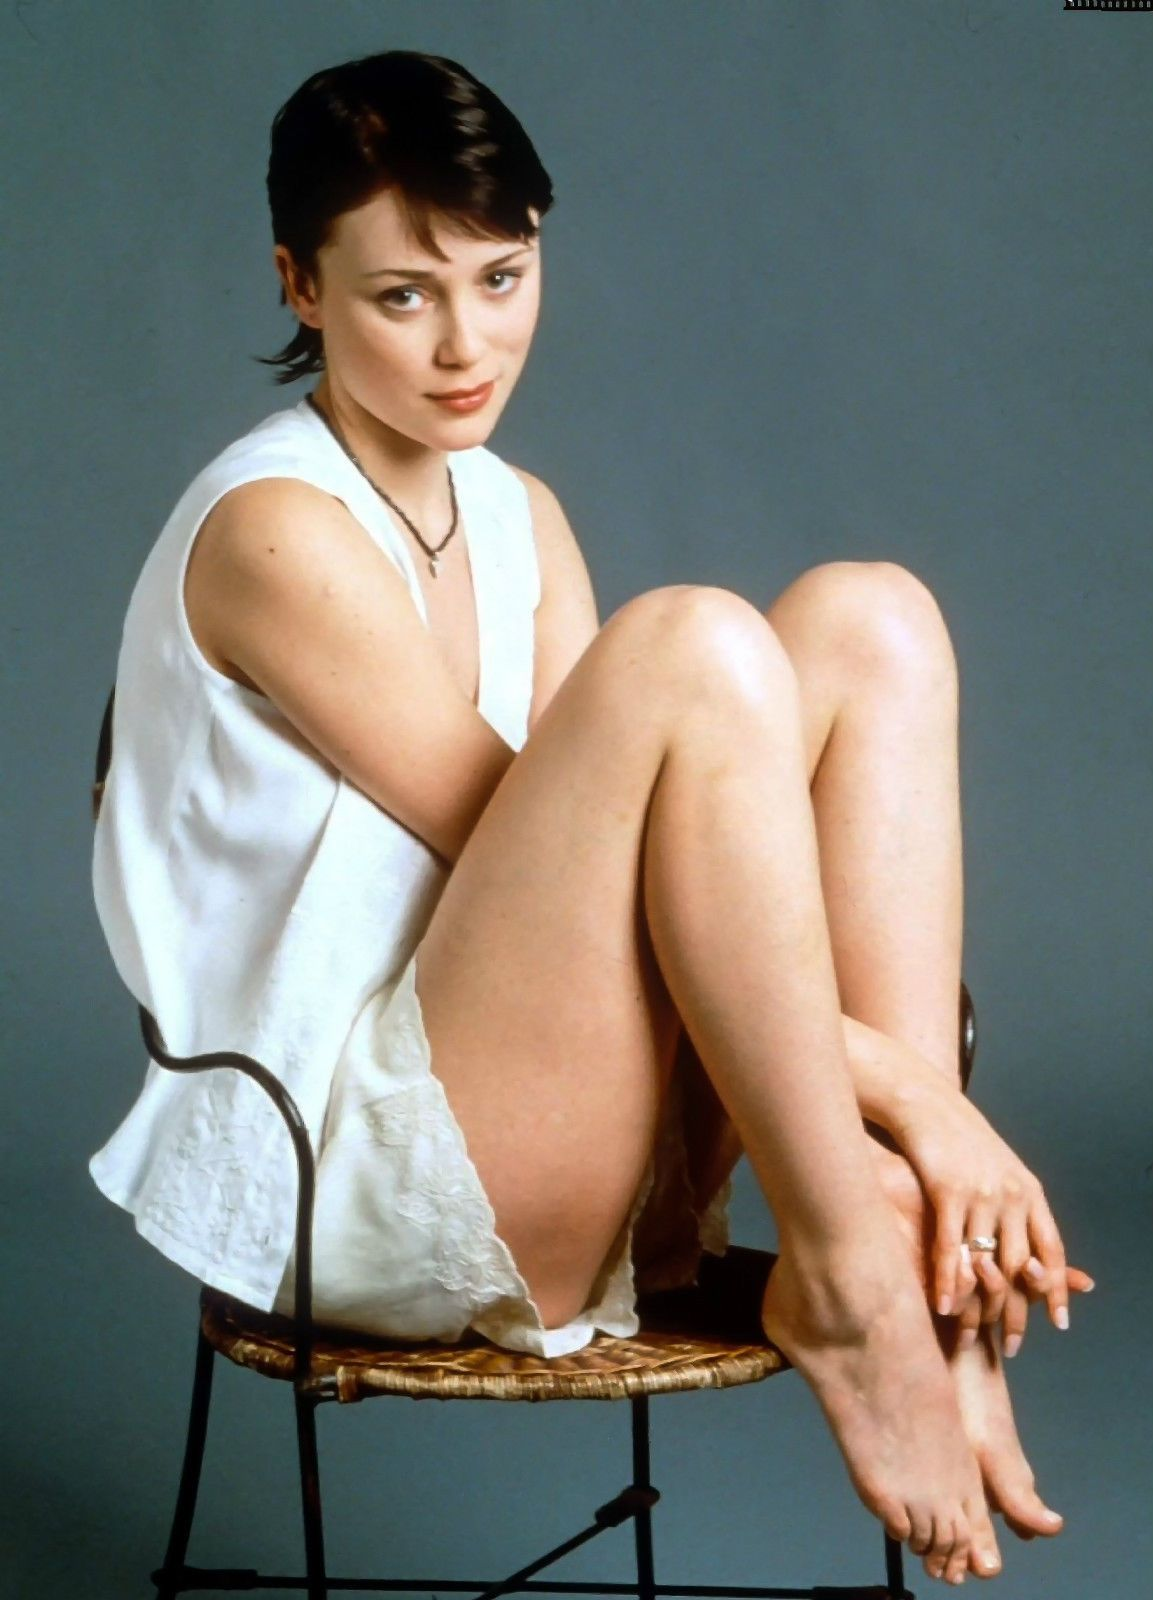 Keely Hawes Topless Awesome photo / picture of keeley hawes 5 | ebay | 60s 70s 80s and beyond